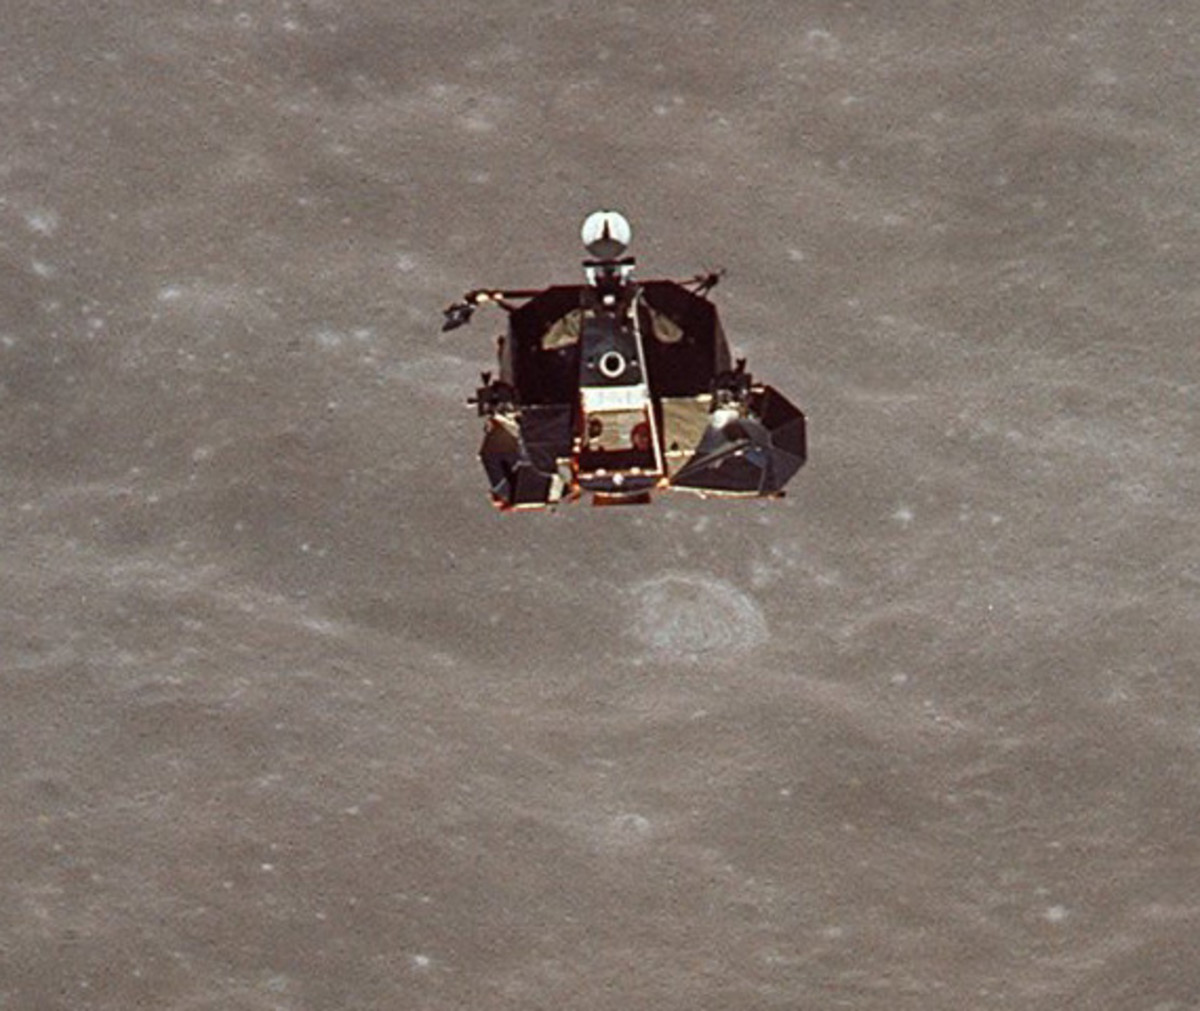 neil-armstrong-first-man-on-the-moon-apollo-11-06